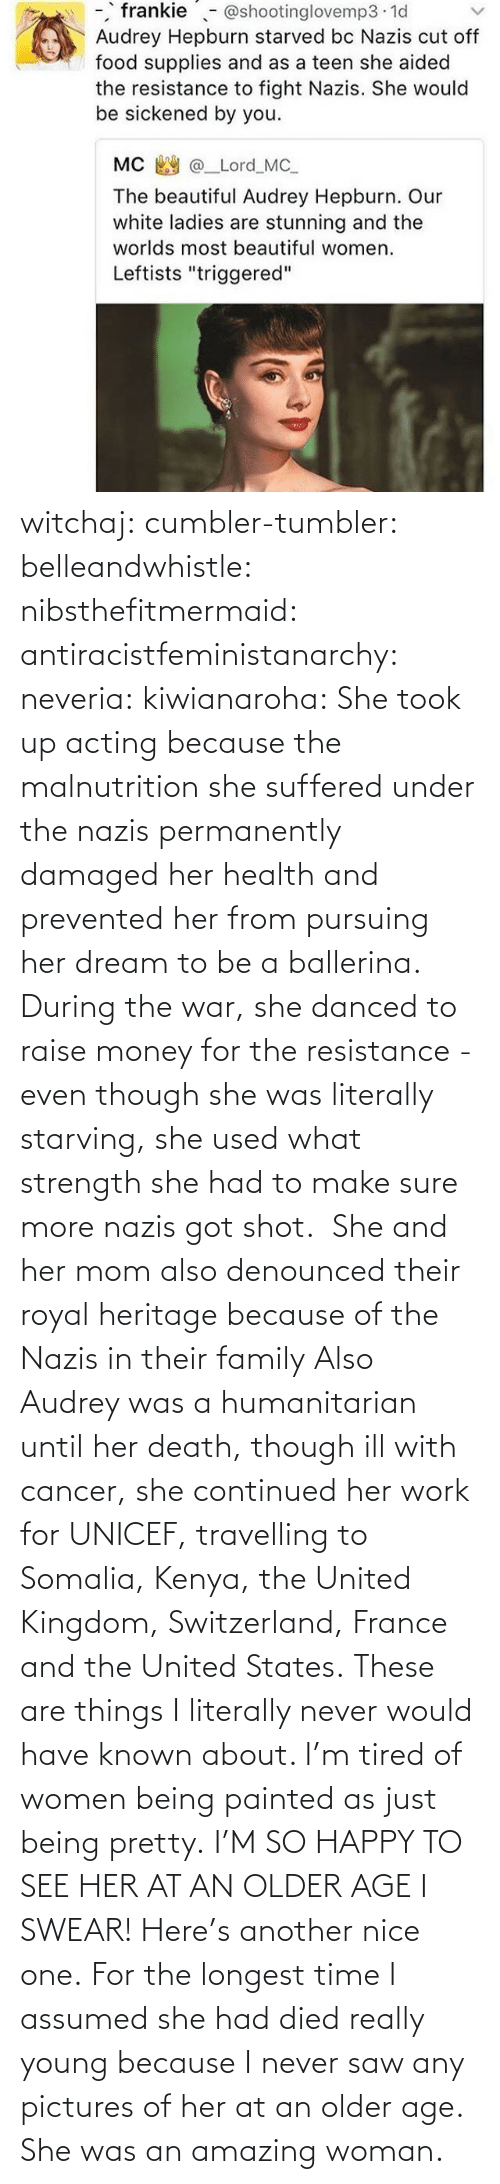 Work: witchaj: cumbler-tumbler:  belleandwhistle:  nibsthefitmermaid:  antiracistfeministanarchy:  neveria:  kiwianaroha: She took up acting because the malnutrition she suffered under the nazis permanently damaged her health and prevented her from pursuing her dream to be a ballerina. During the war, she danced to raise money for the resistance - even though she was literally starving, she used what strength she had to make sure more nazis got shot.  She and her mom also denounced their royal heritage because of the Nazis in their family  Also Audrey was a humanitarian until her death, though ill with cancer, she continued her work for UNICEF, travelling to Somalia, Kenya, the United Kingdom, Switzerland, France and the United States.  These are things I literally never would have known about. I'm tired of women being painted as just being pretty.  I'M SO HAPPY TO SEE HER AT AN OLDER AGE I SWEAR!  Here's another nice one.   For the longest time I assumed she had died really young because I never saw any pictures of her at an older age.  She was an amazing woman.